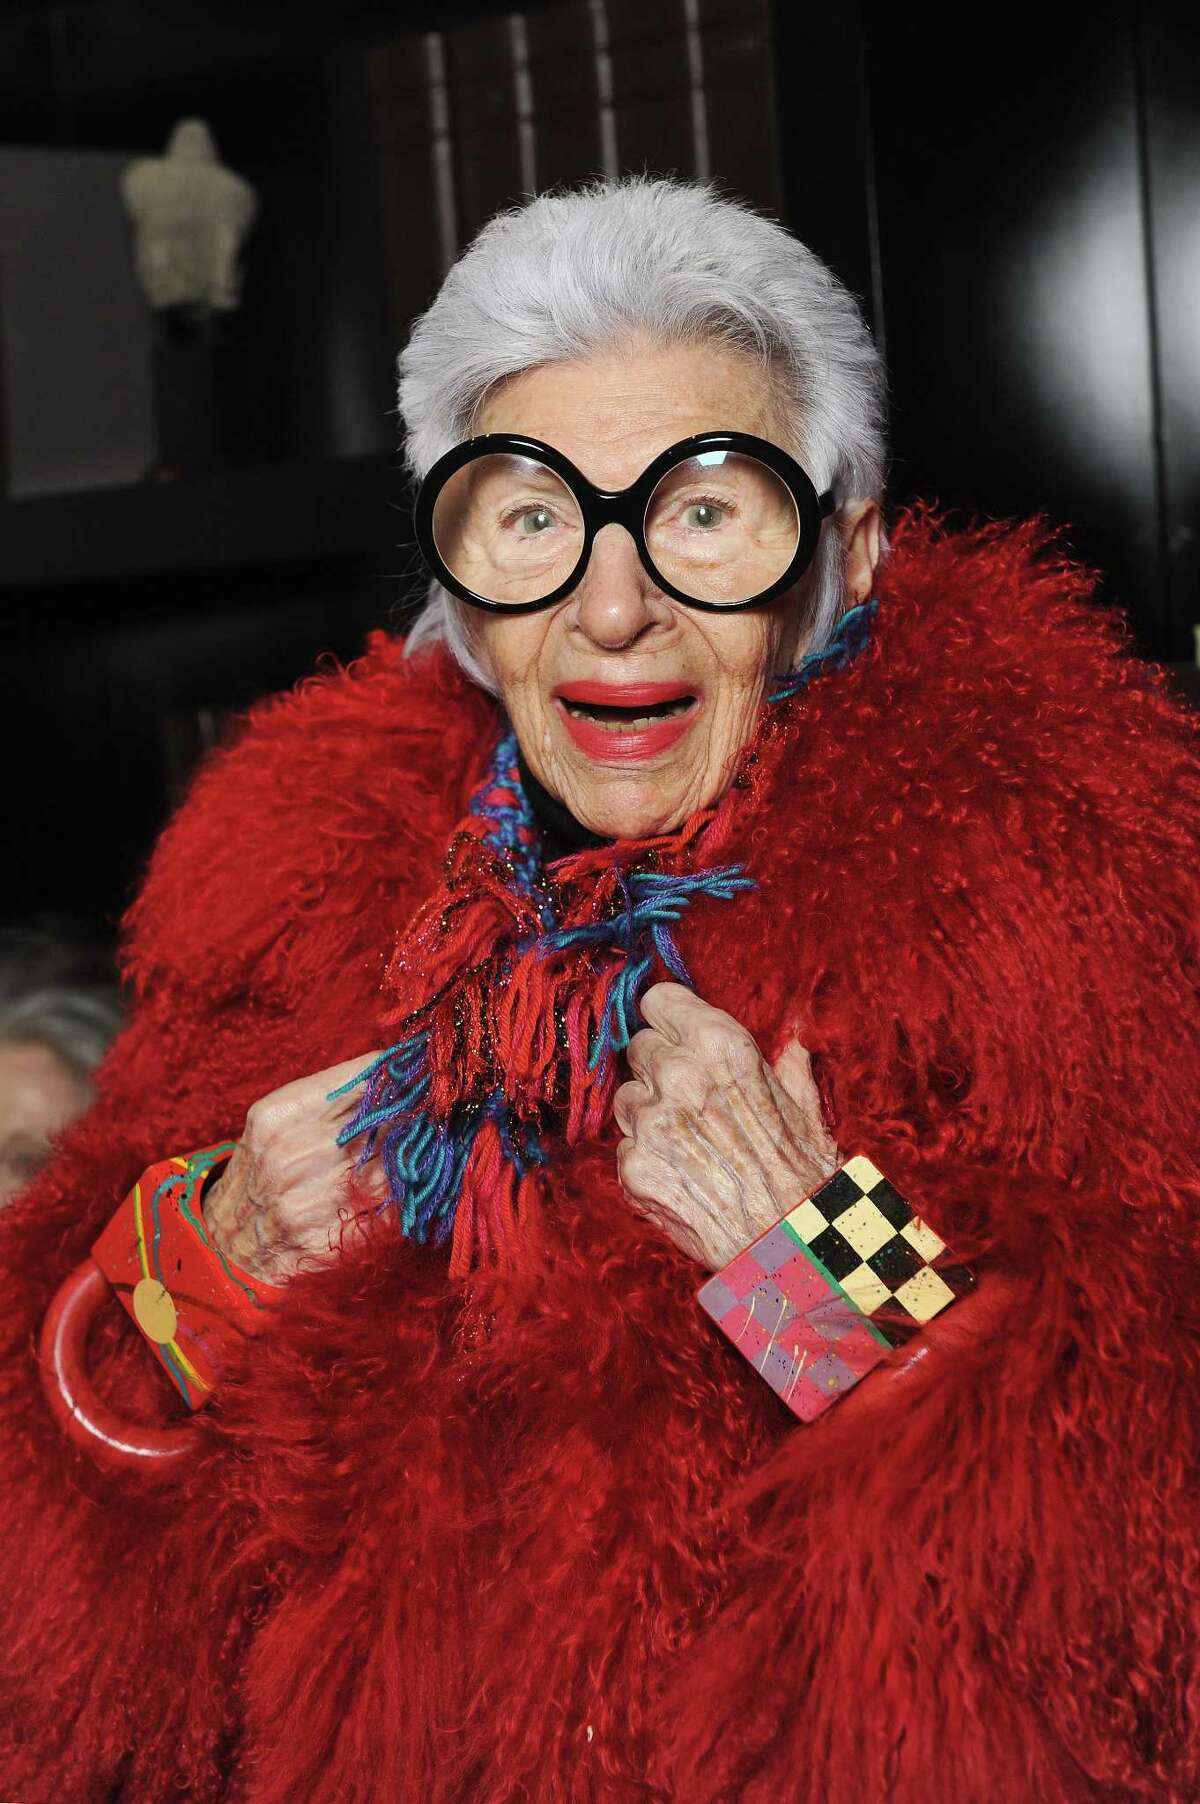 WiseWear Corp.'s notable accomplishments included landing fashion icon Iris Apfel as a design partner and adviser, according to its website.